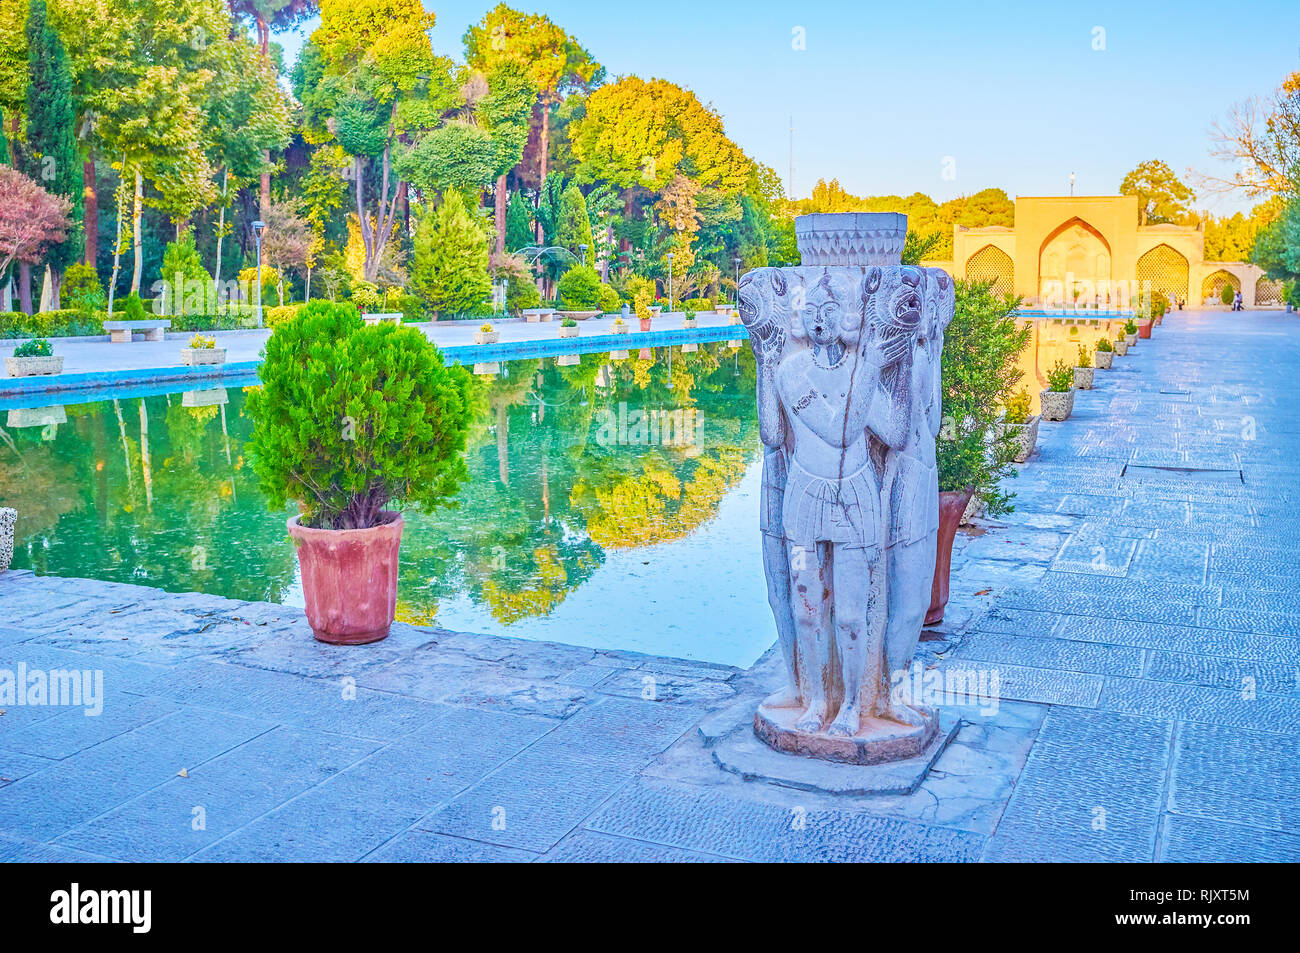 The beautiful stone sculpture in Persian style located at the edges of the main pool in Chehel Sotoun Palace complex, Isfahan, Iran - Stock Image